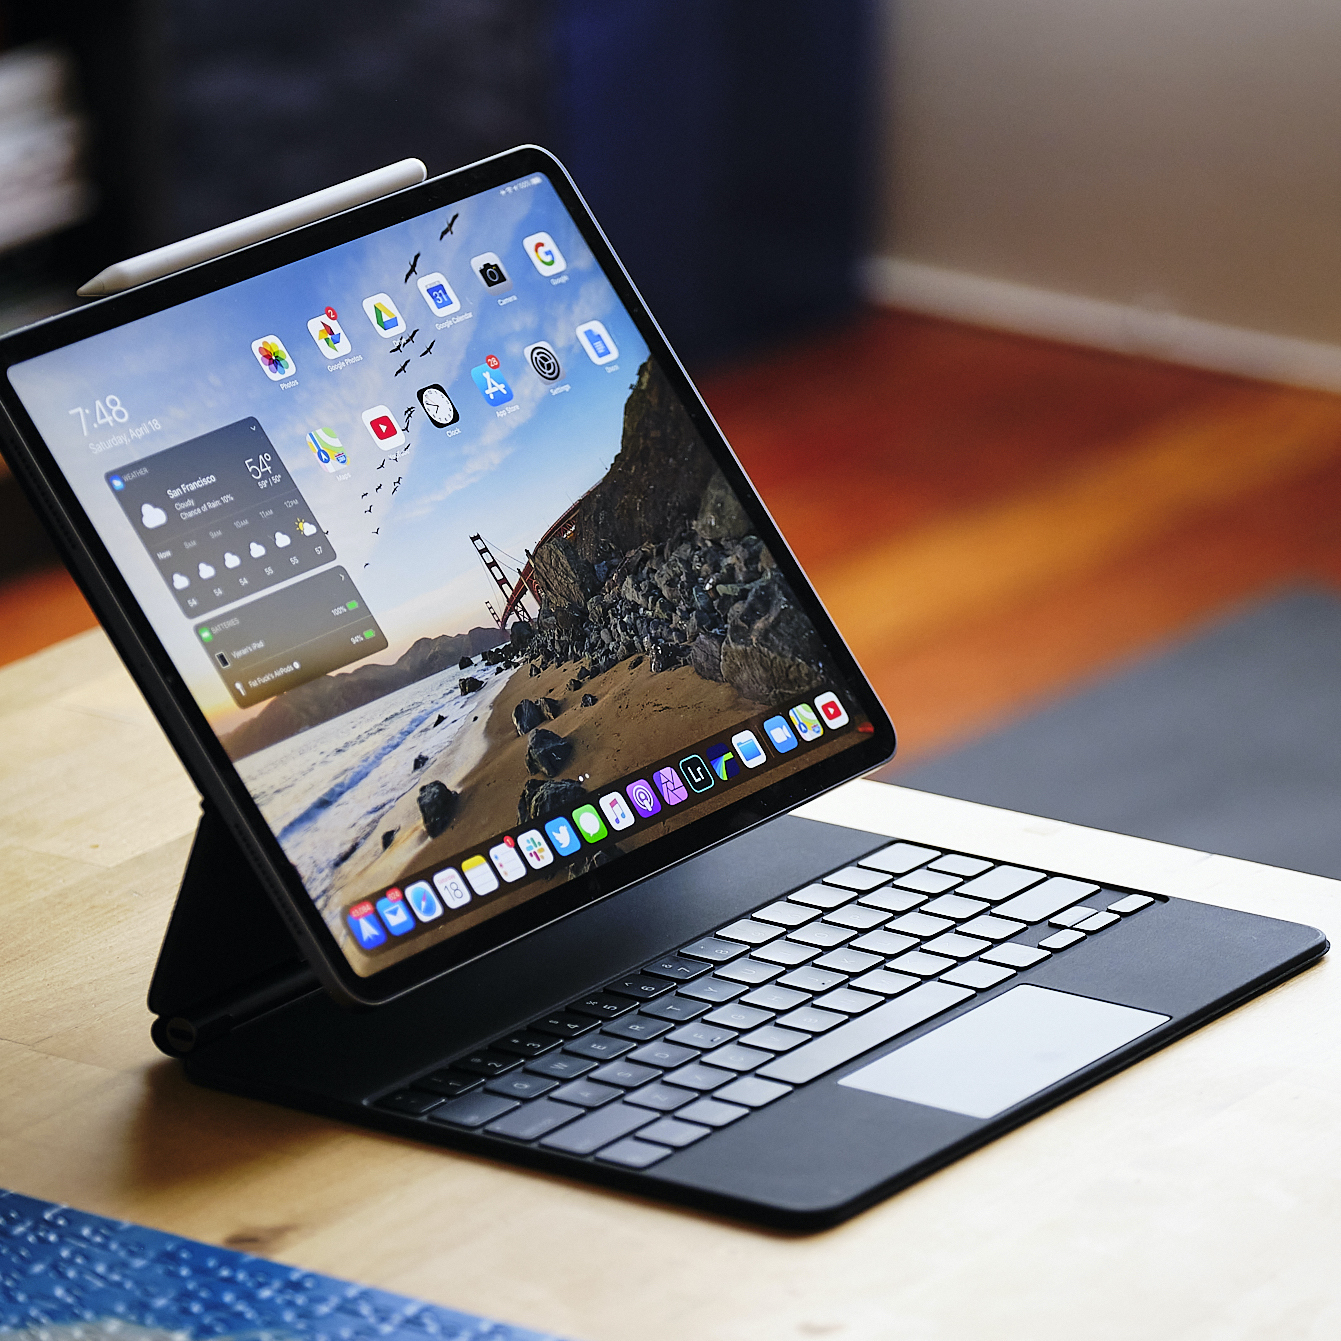 Magic Keyboard For The Ipad Pro Review The Best Way To Turn An Ipad Into A Laptop The Verge